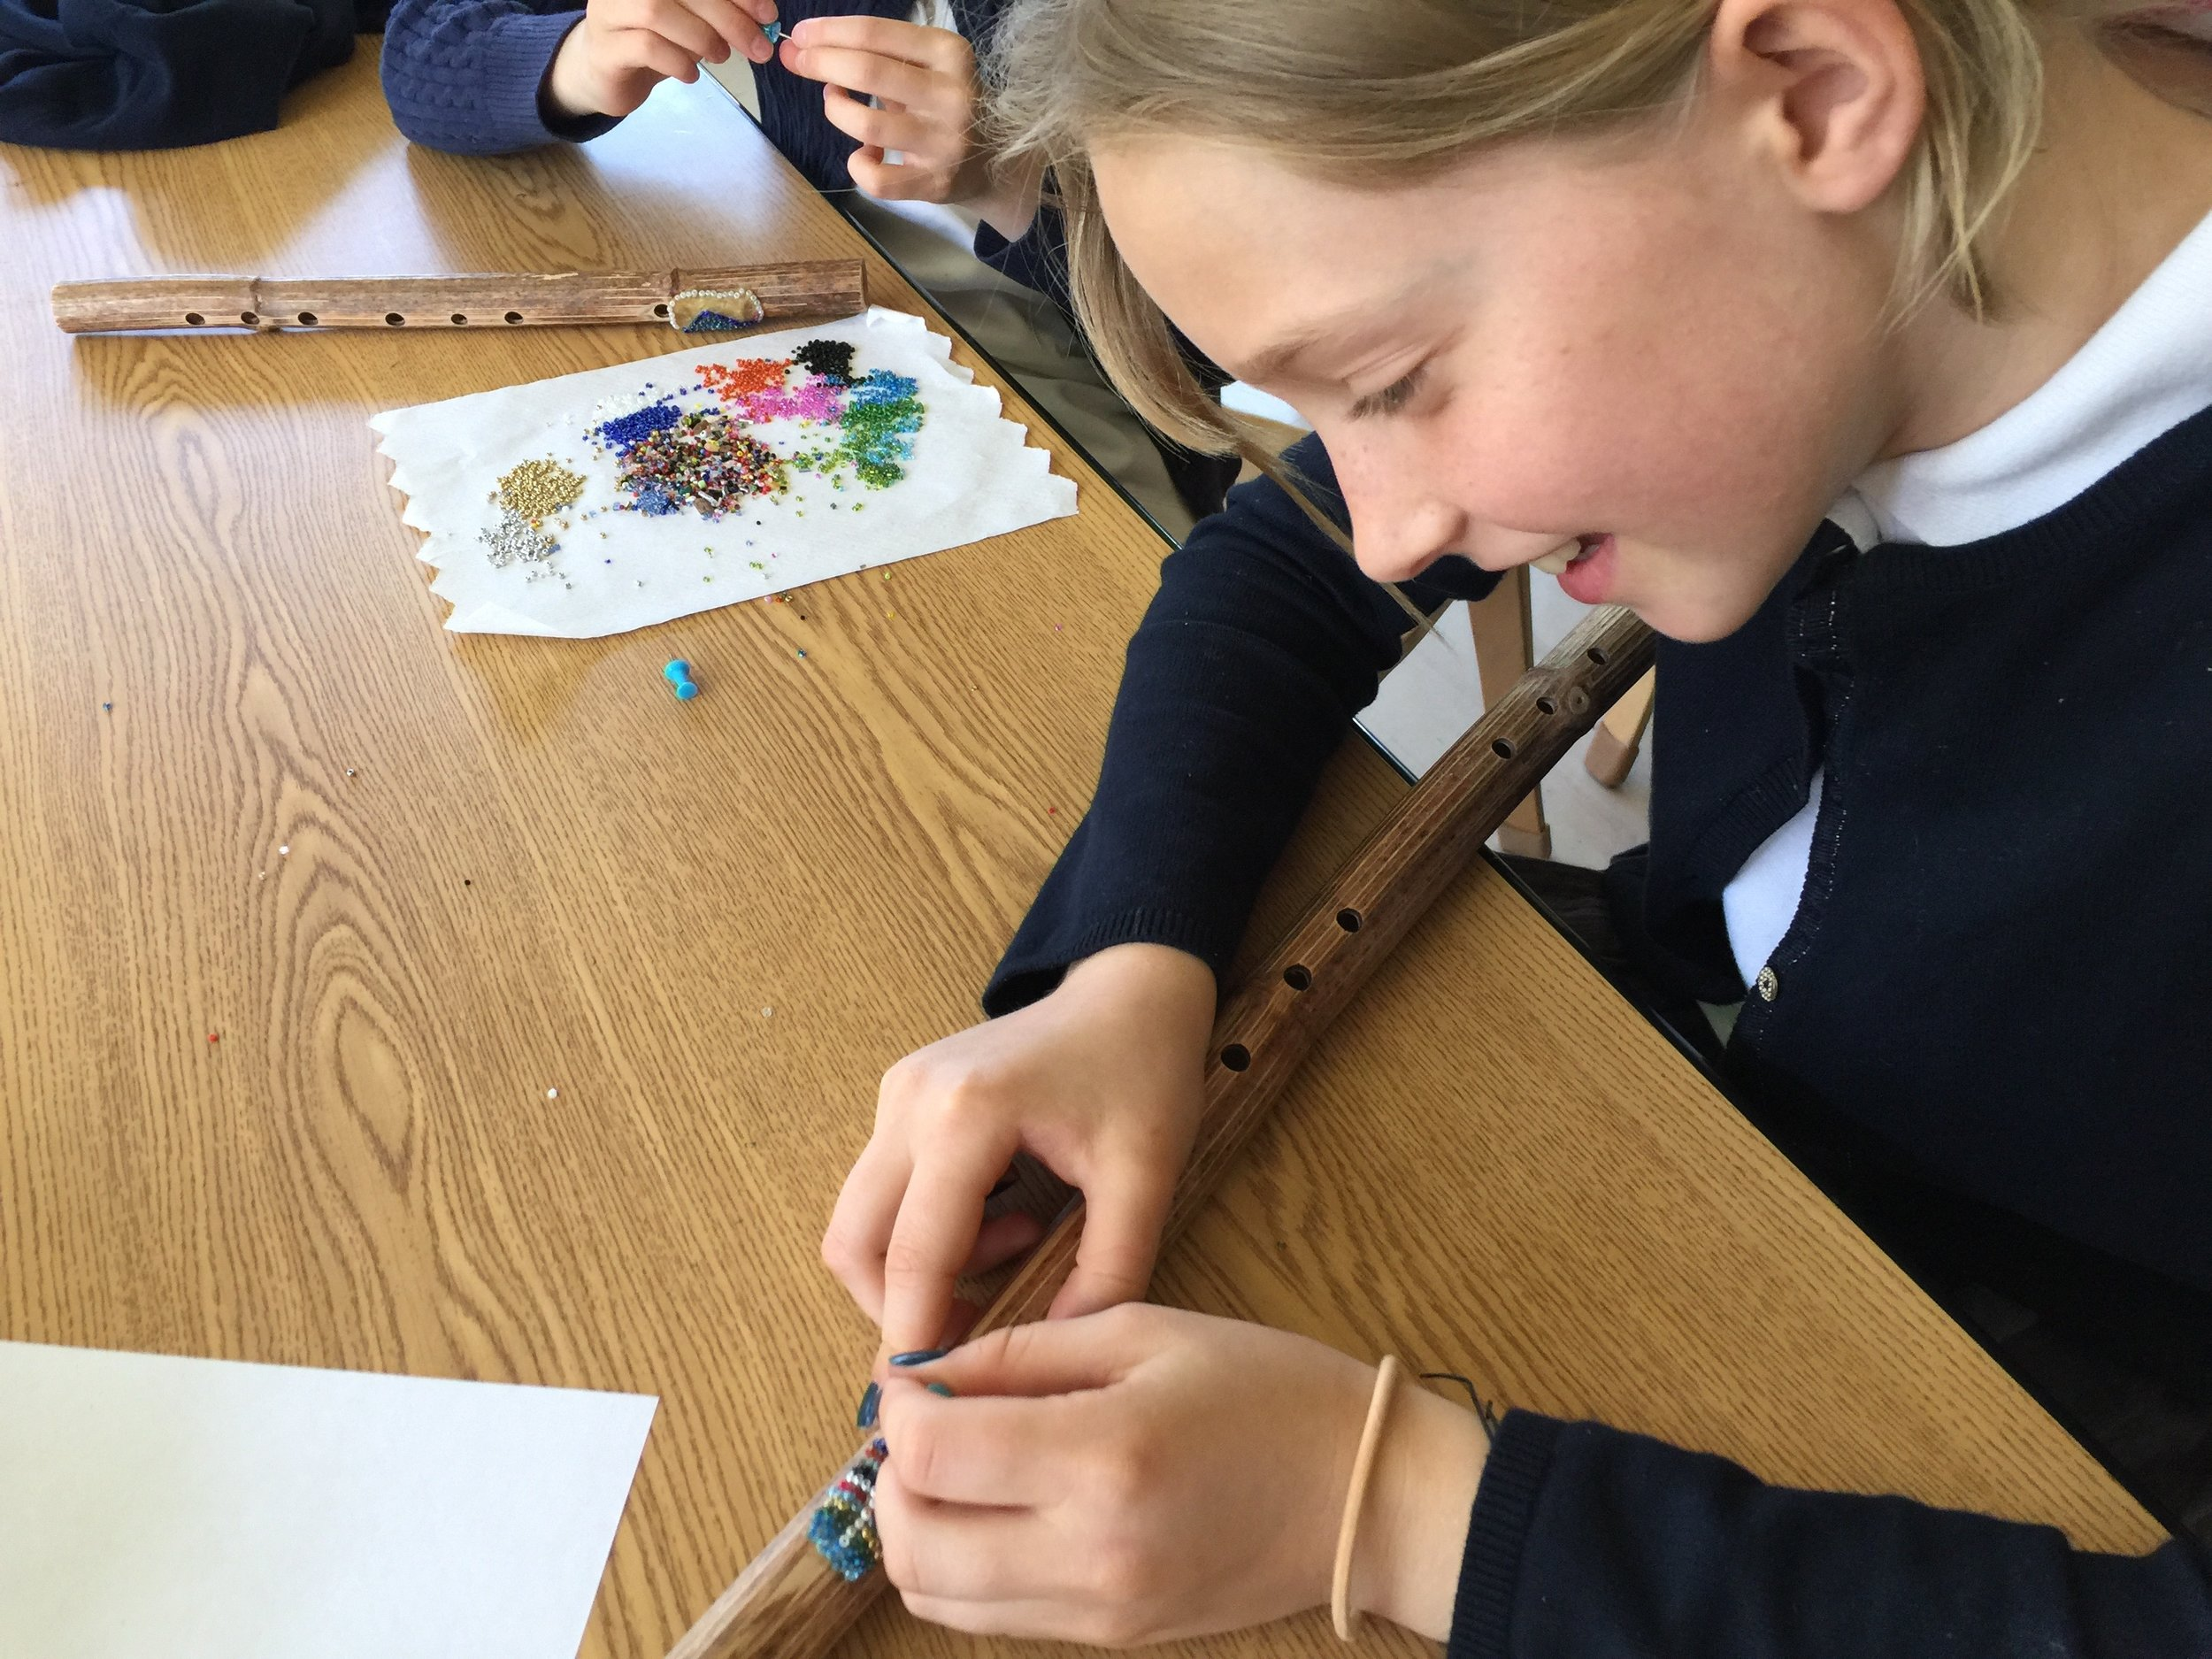 Elementary students learn about ancient instruments as part of integrated lessons involving Cultural History and Performing Arts